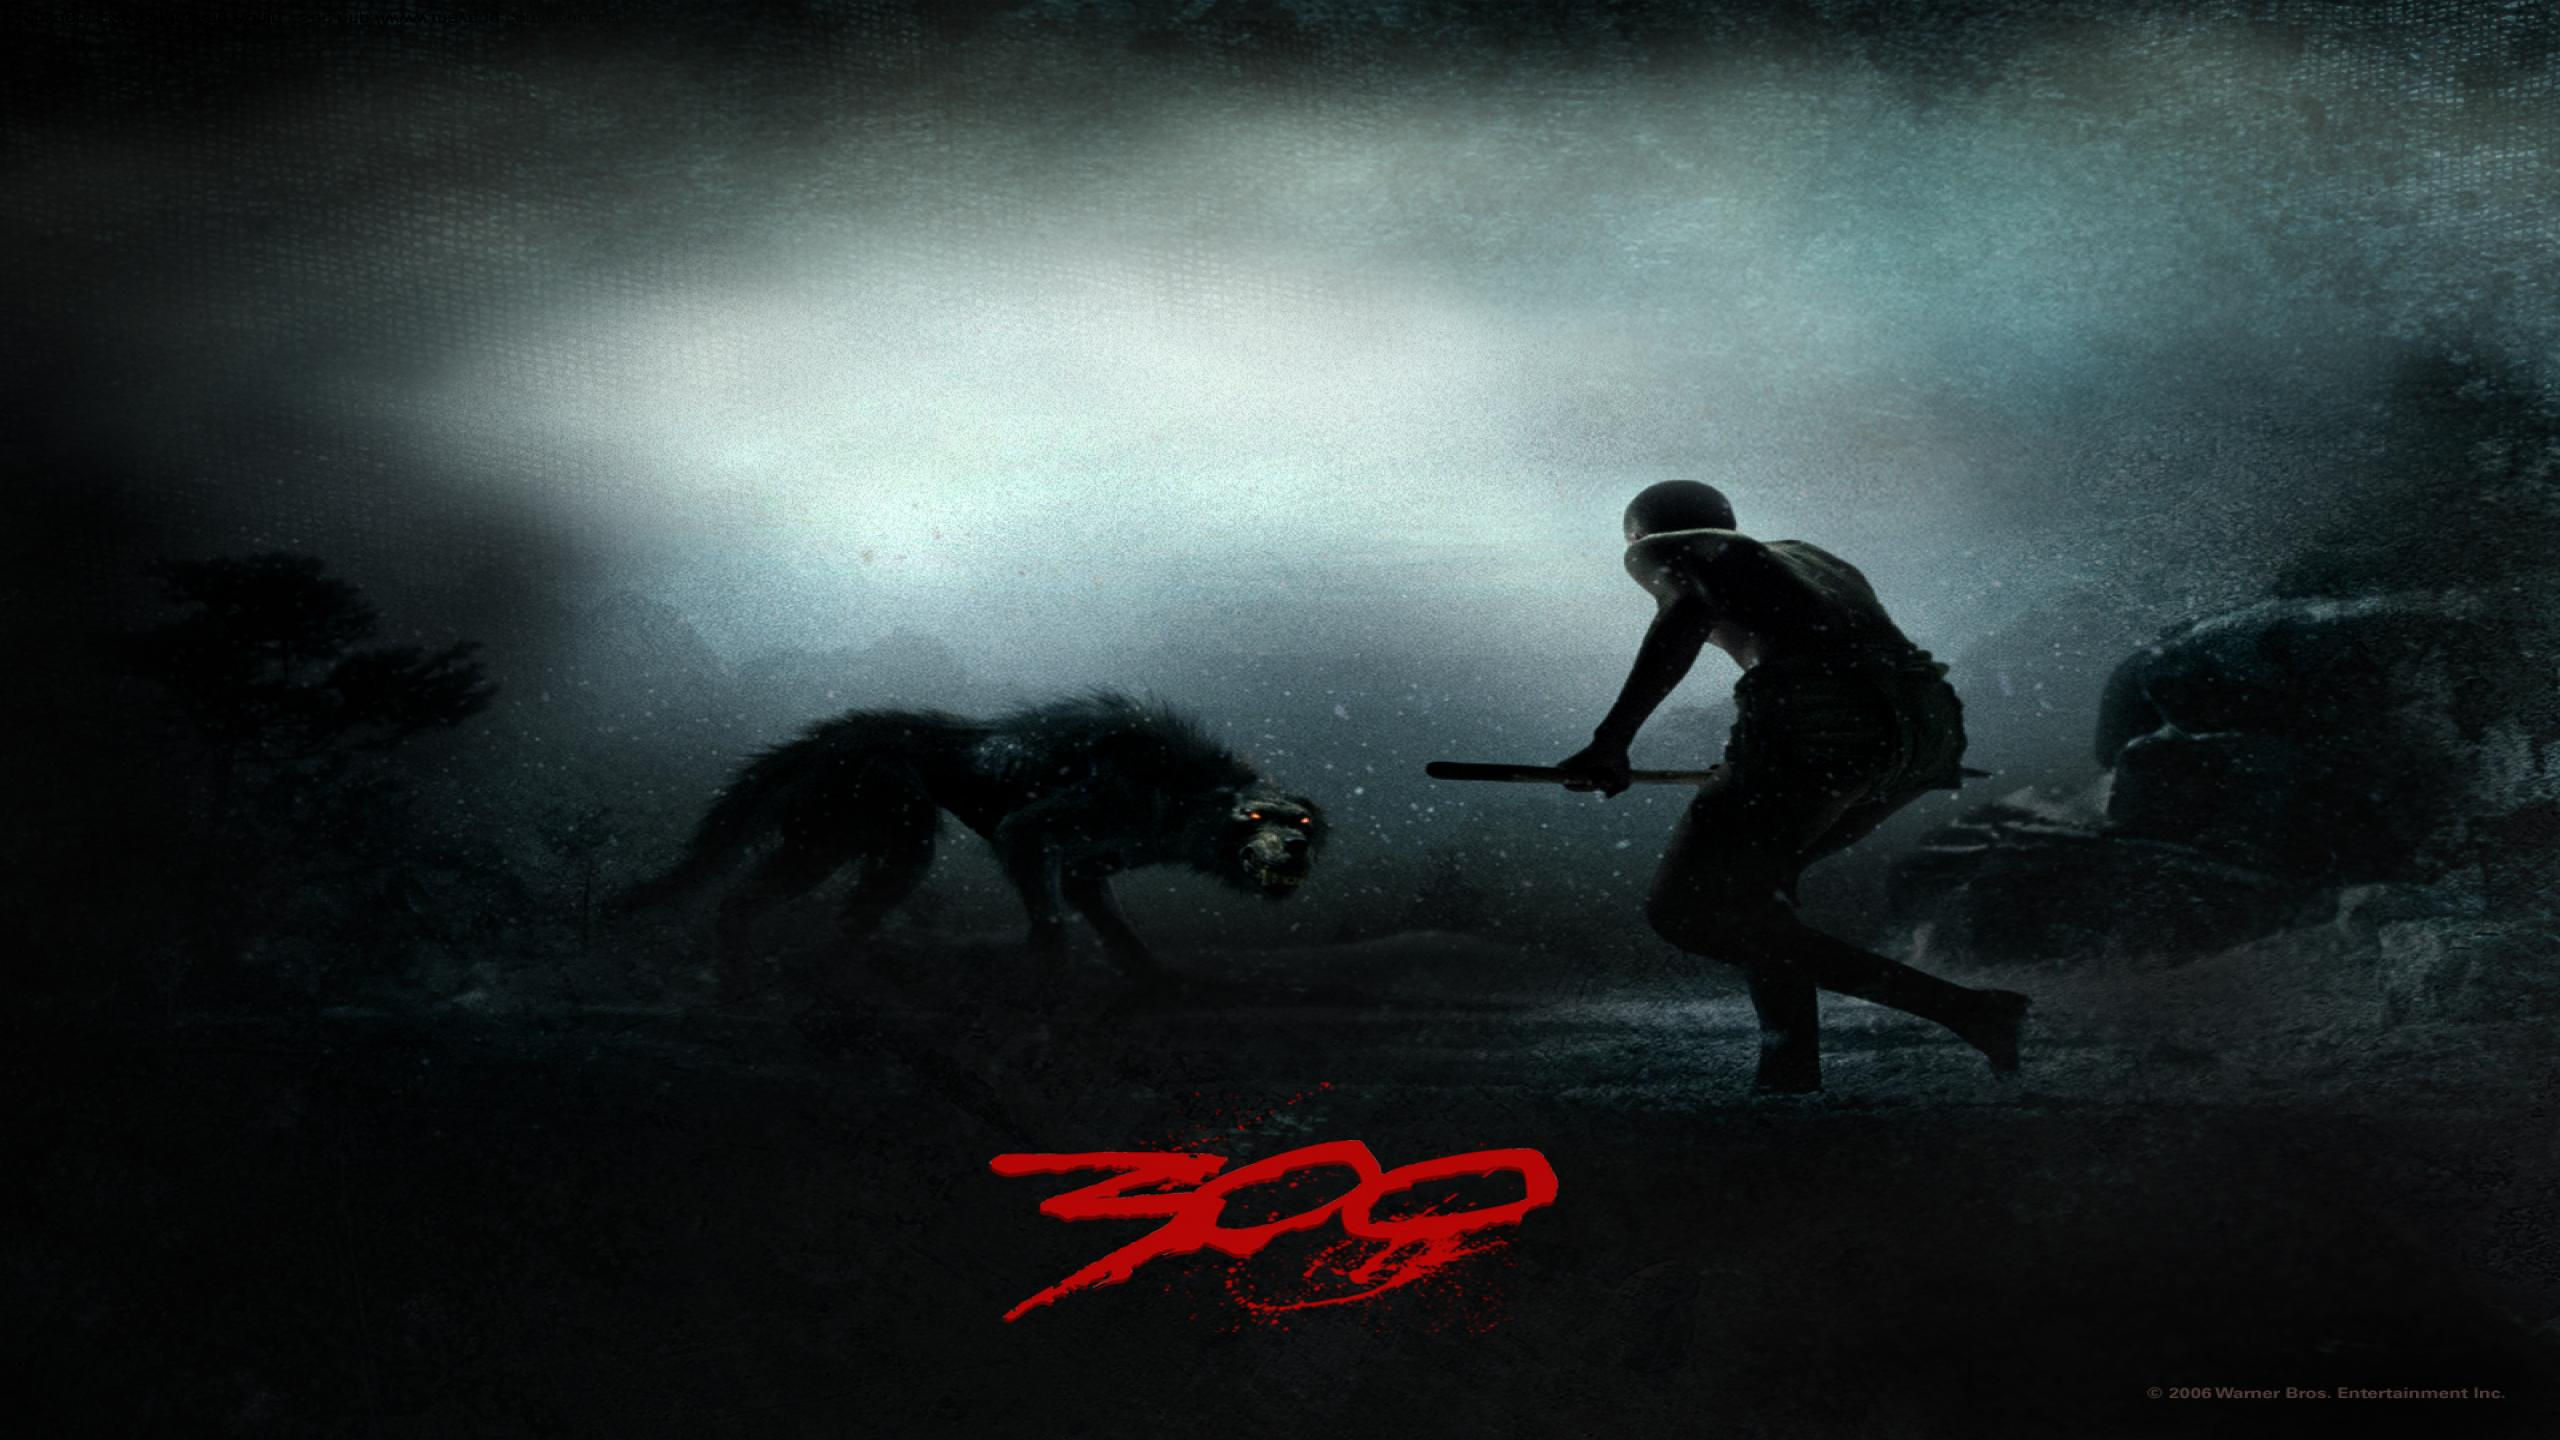 300 Spartans Wallpaper - WallpaperSafari